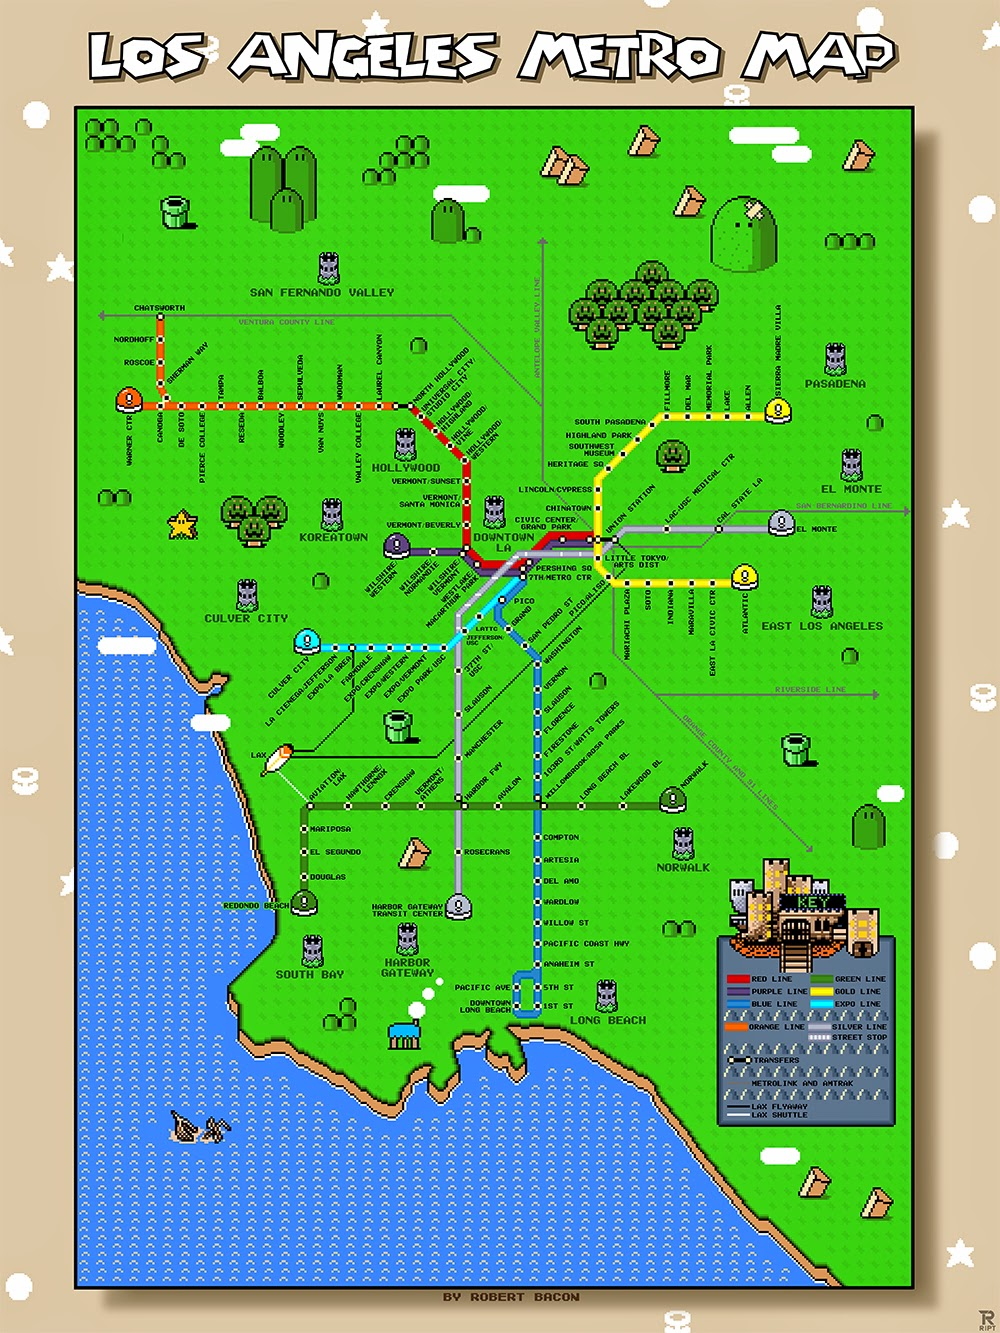 Things to do in los angeles super mario world los angeles metro map an artist going by the name robert bacon has created a map of the metro line of la in the theme of super mario this combines two of my favorite things gumiabroncs Choice Image